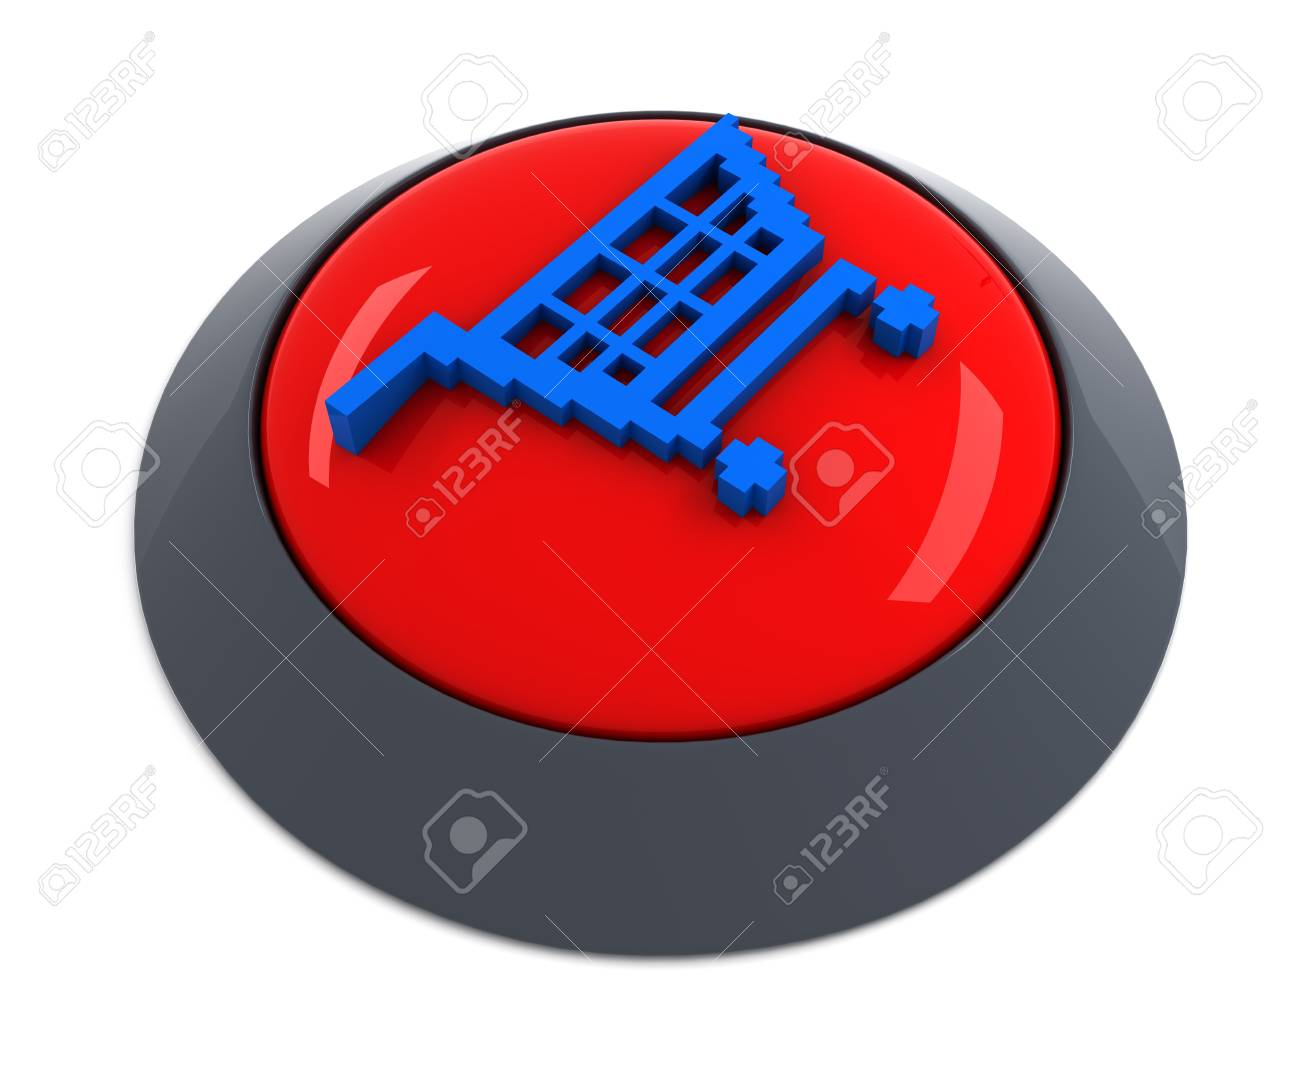 Add to cart button Stock Photo - 7914705